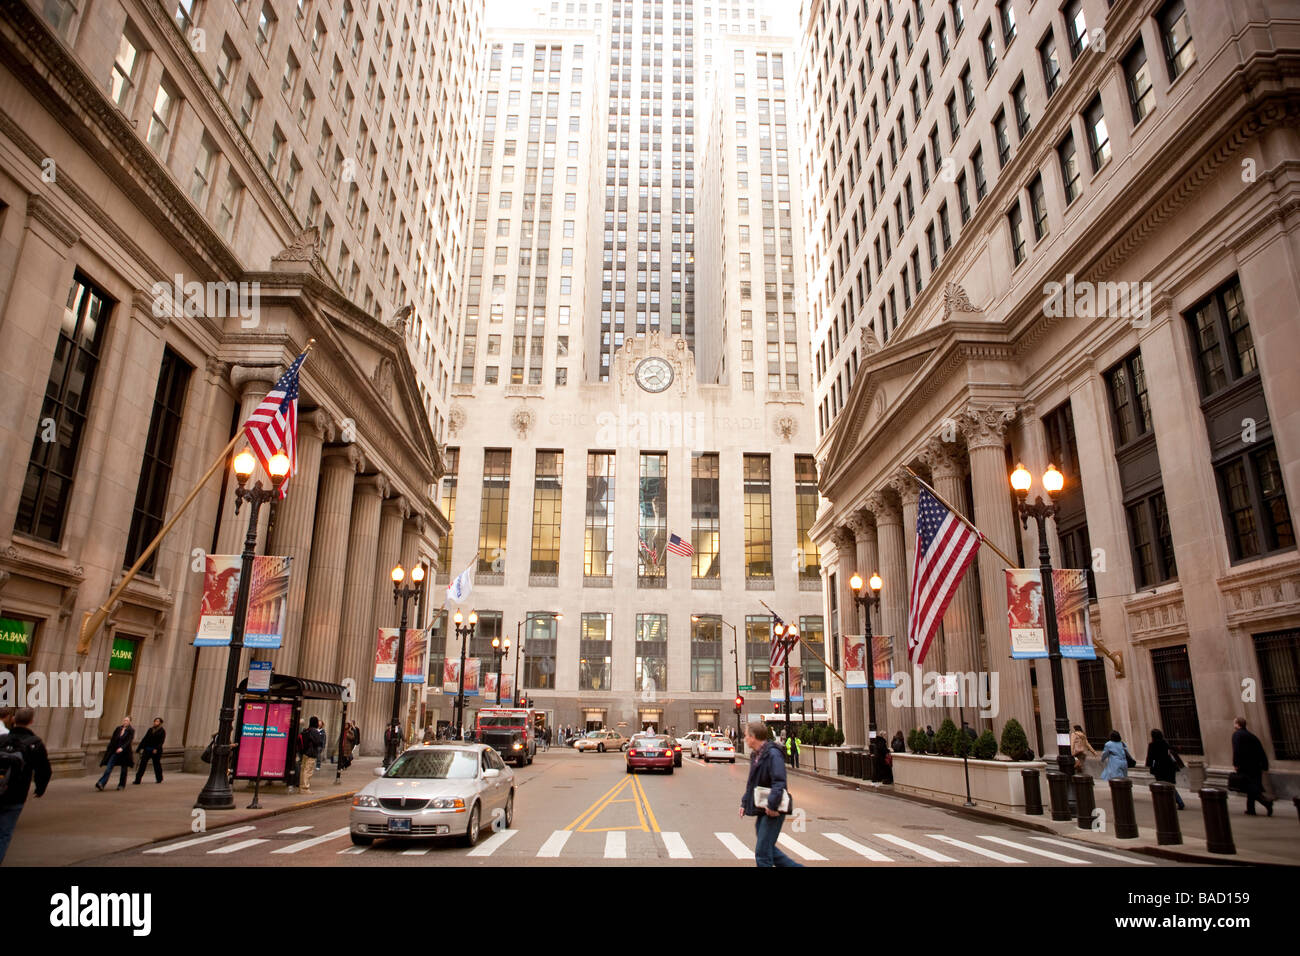 Chicago Board of Trade Building Chicago Illinois - Stock Image